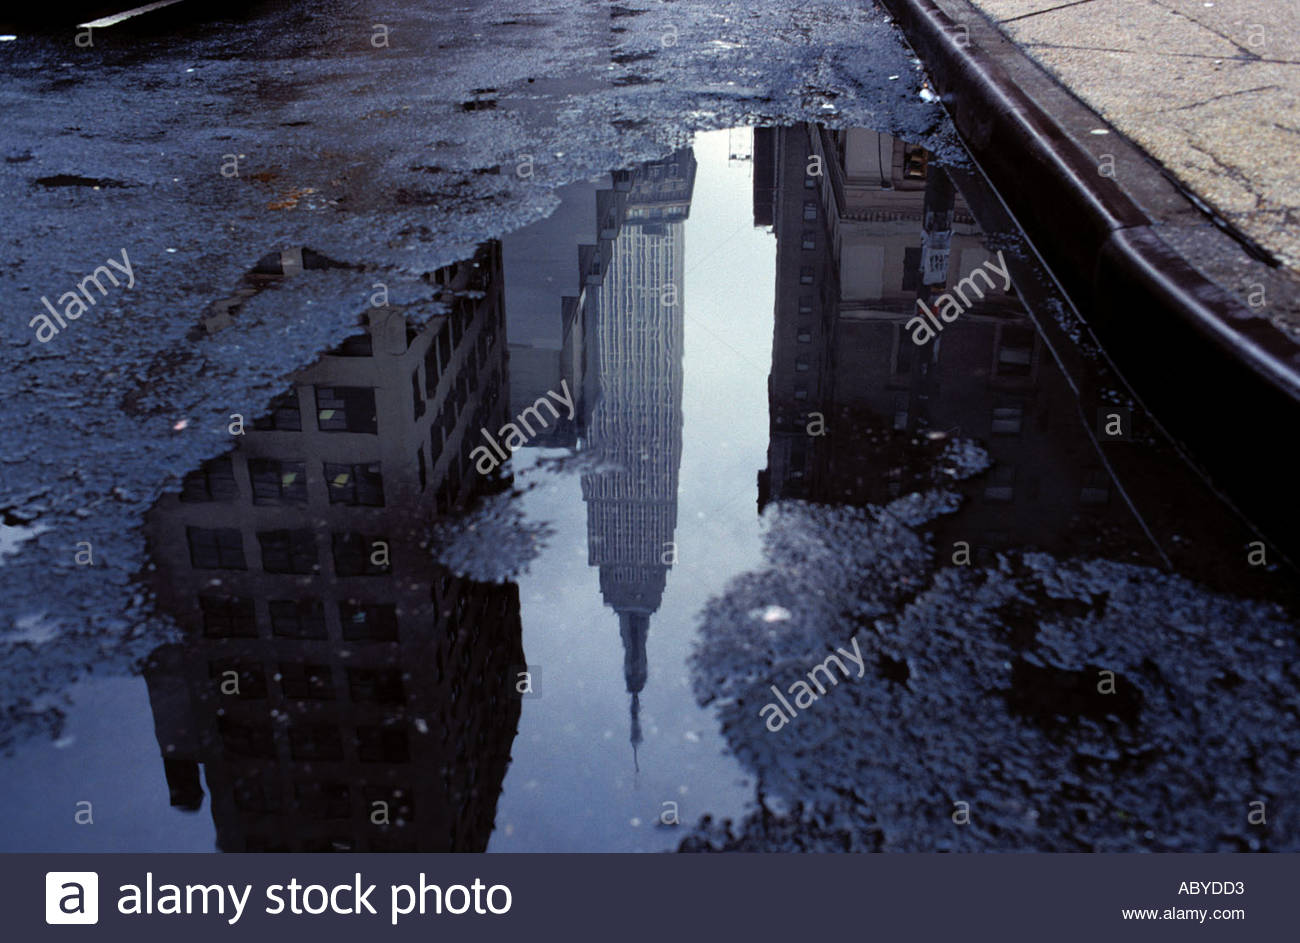 Empire State Building reflexion in puddle rain water contrast prosperity affluence poverty street kerb New York City USA - Stock Image